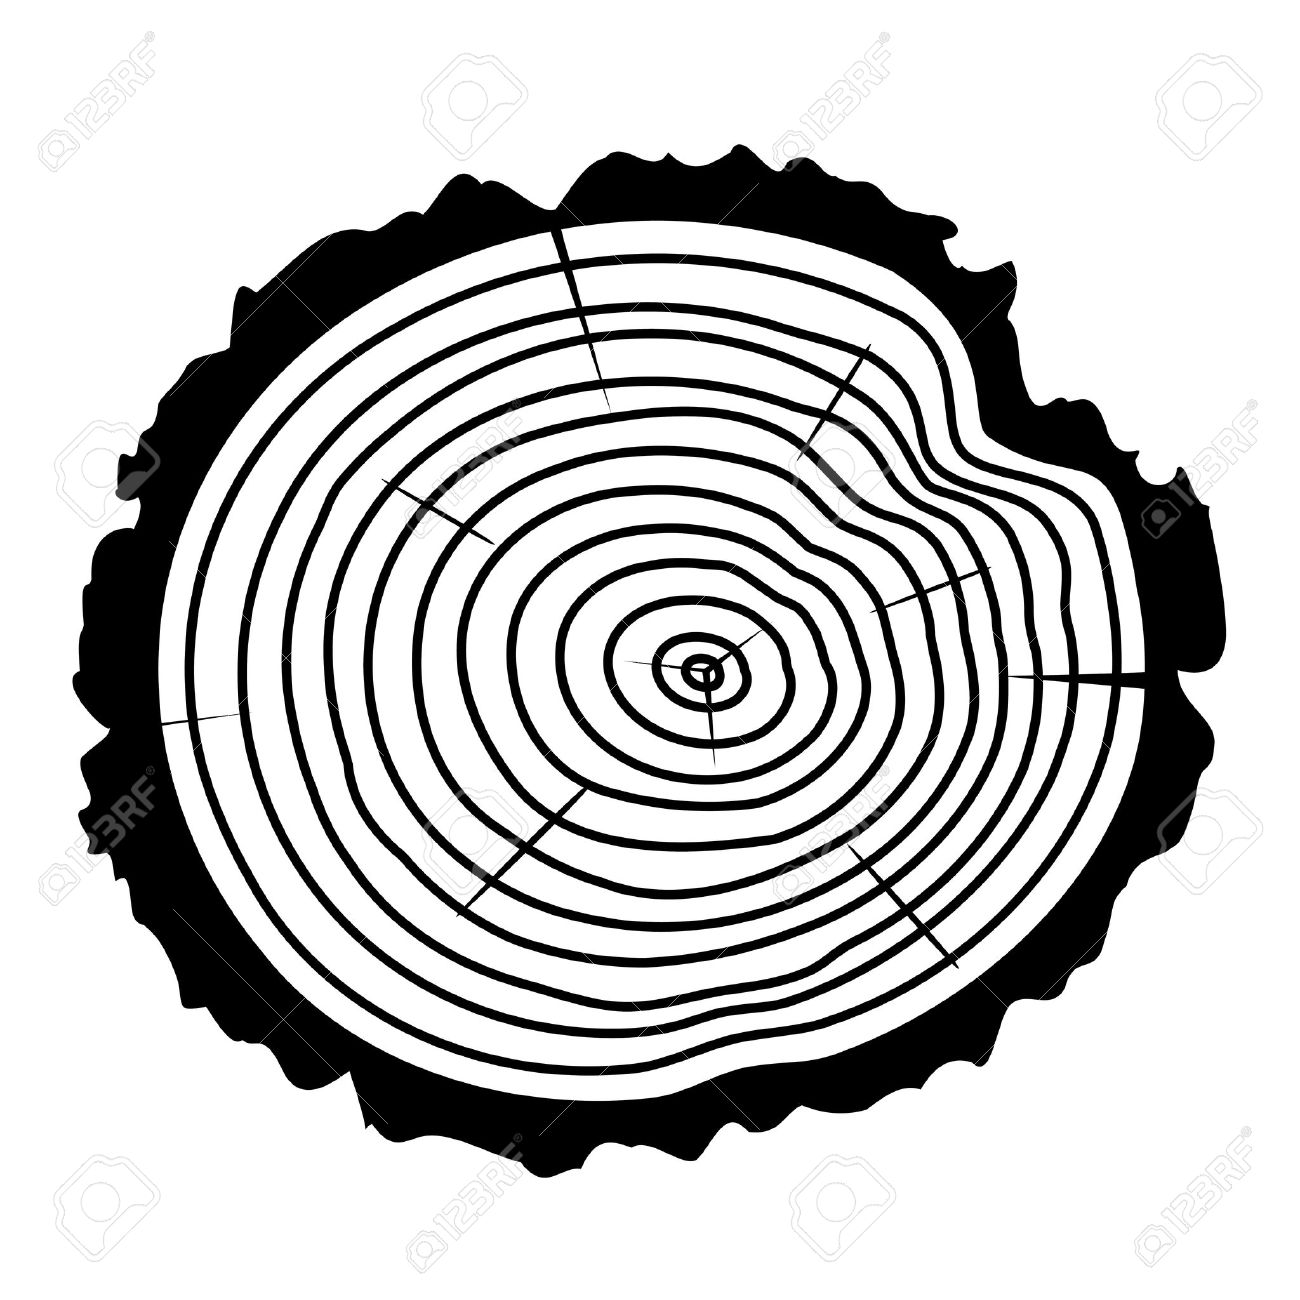 1300x1300 Black And White Wooden Cut Of A Tree Log With Concentric Rings